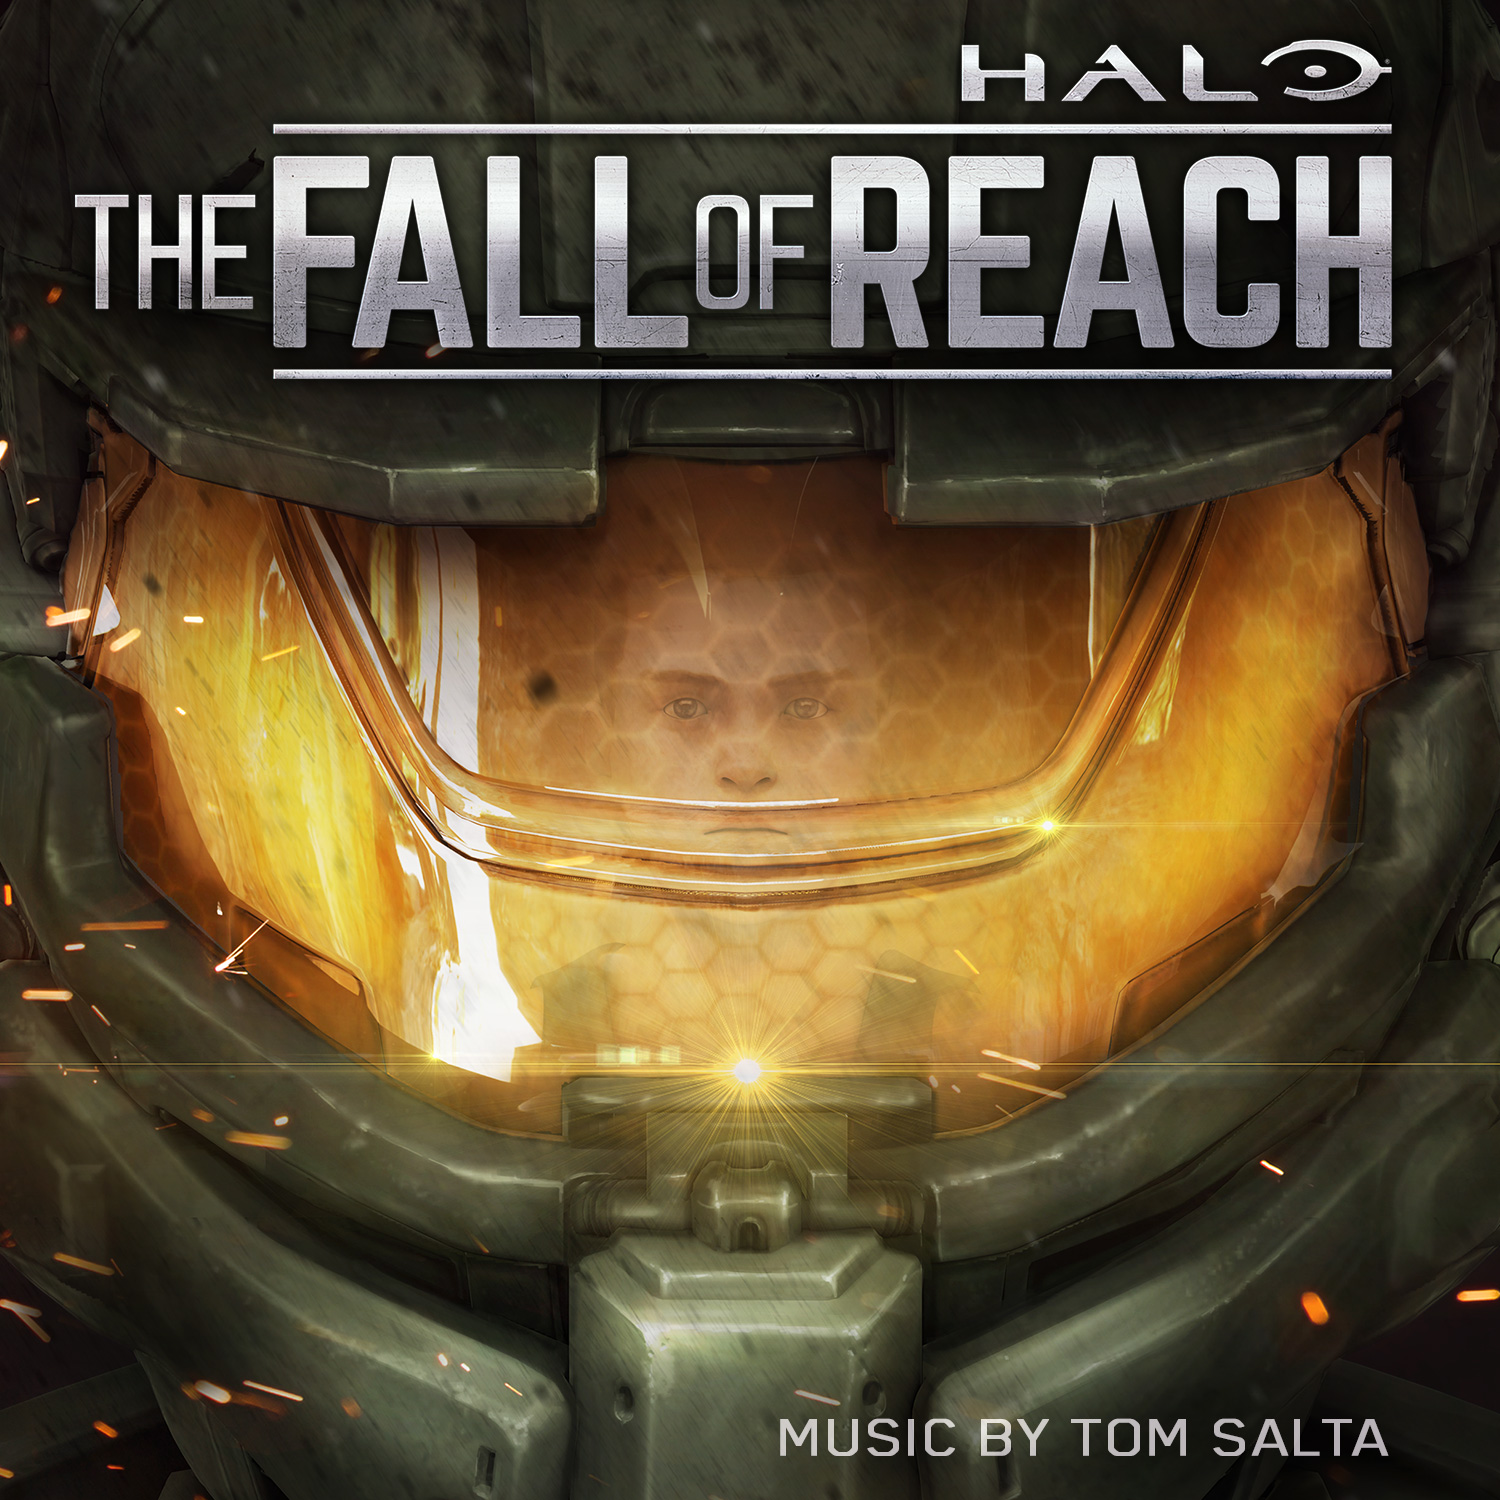 Halo: The Fall of Reach Original Soundtrack